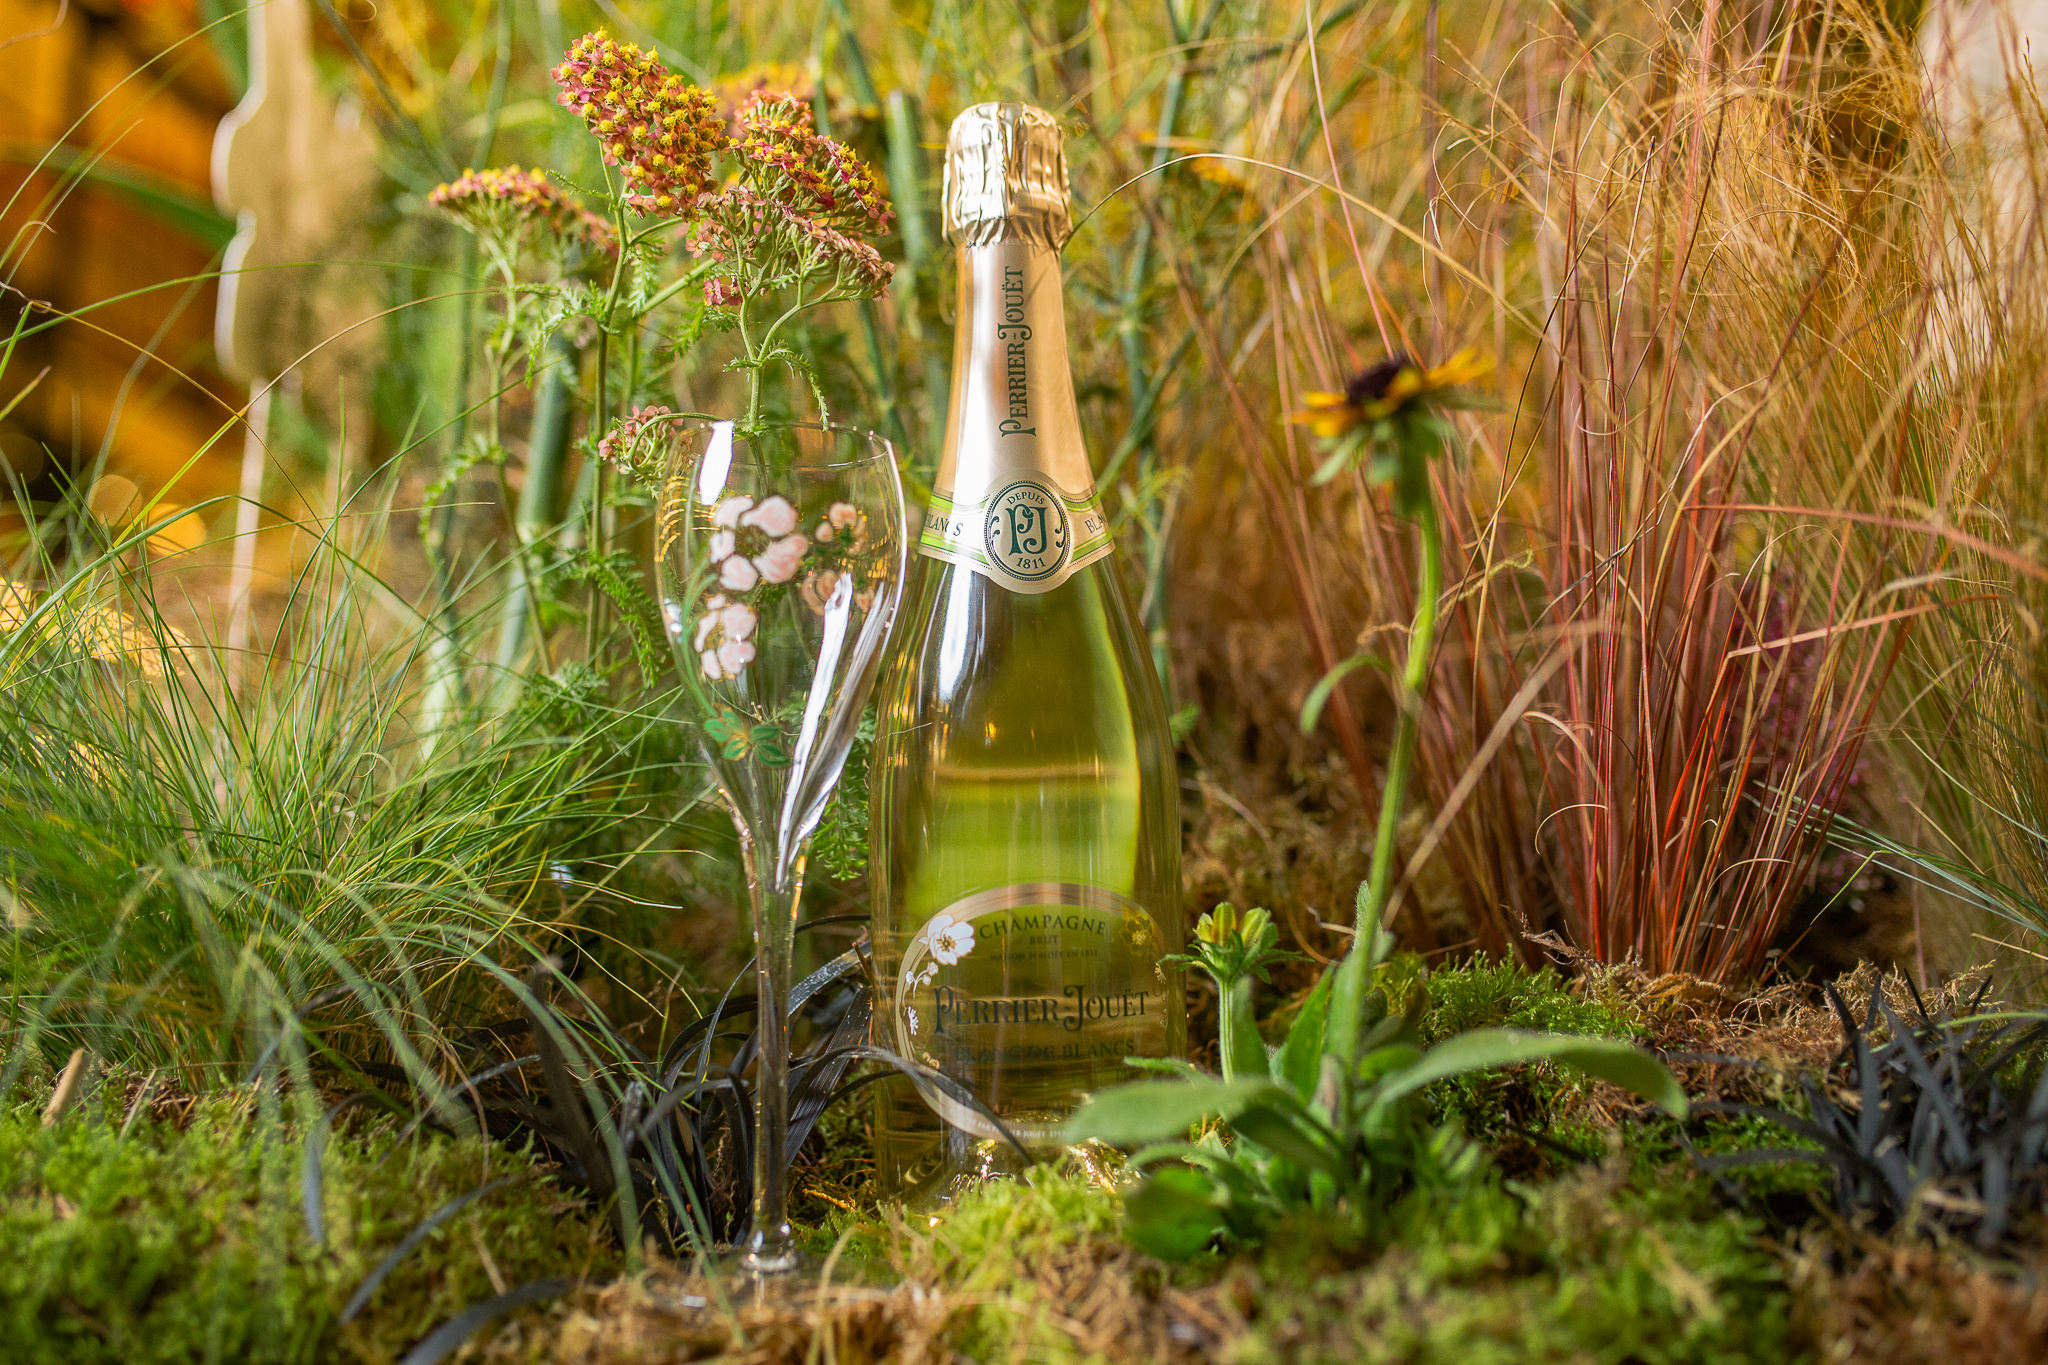 Foraging for Perrier-Jouët champagne.